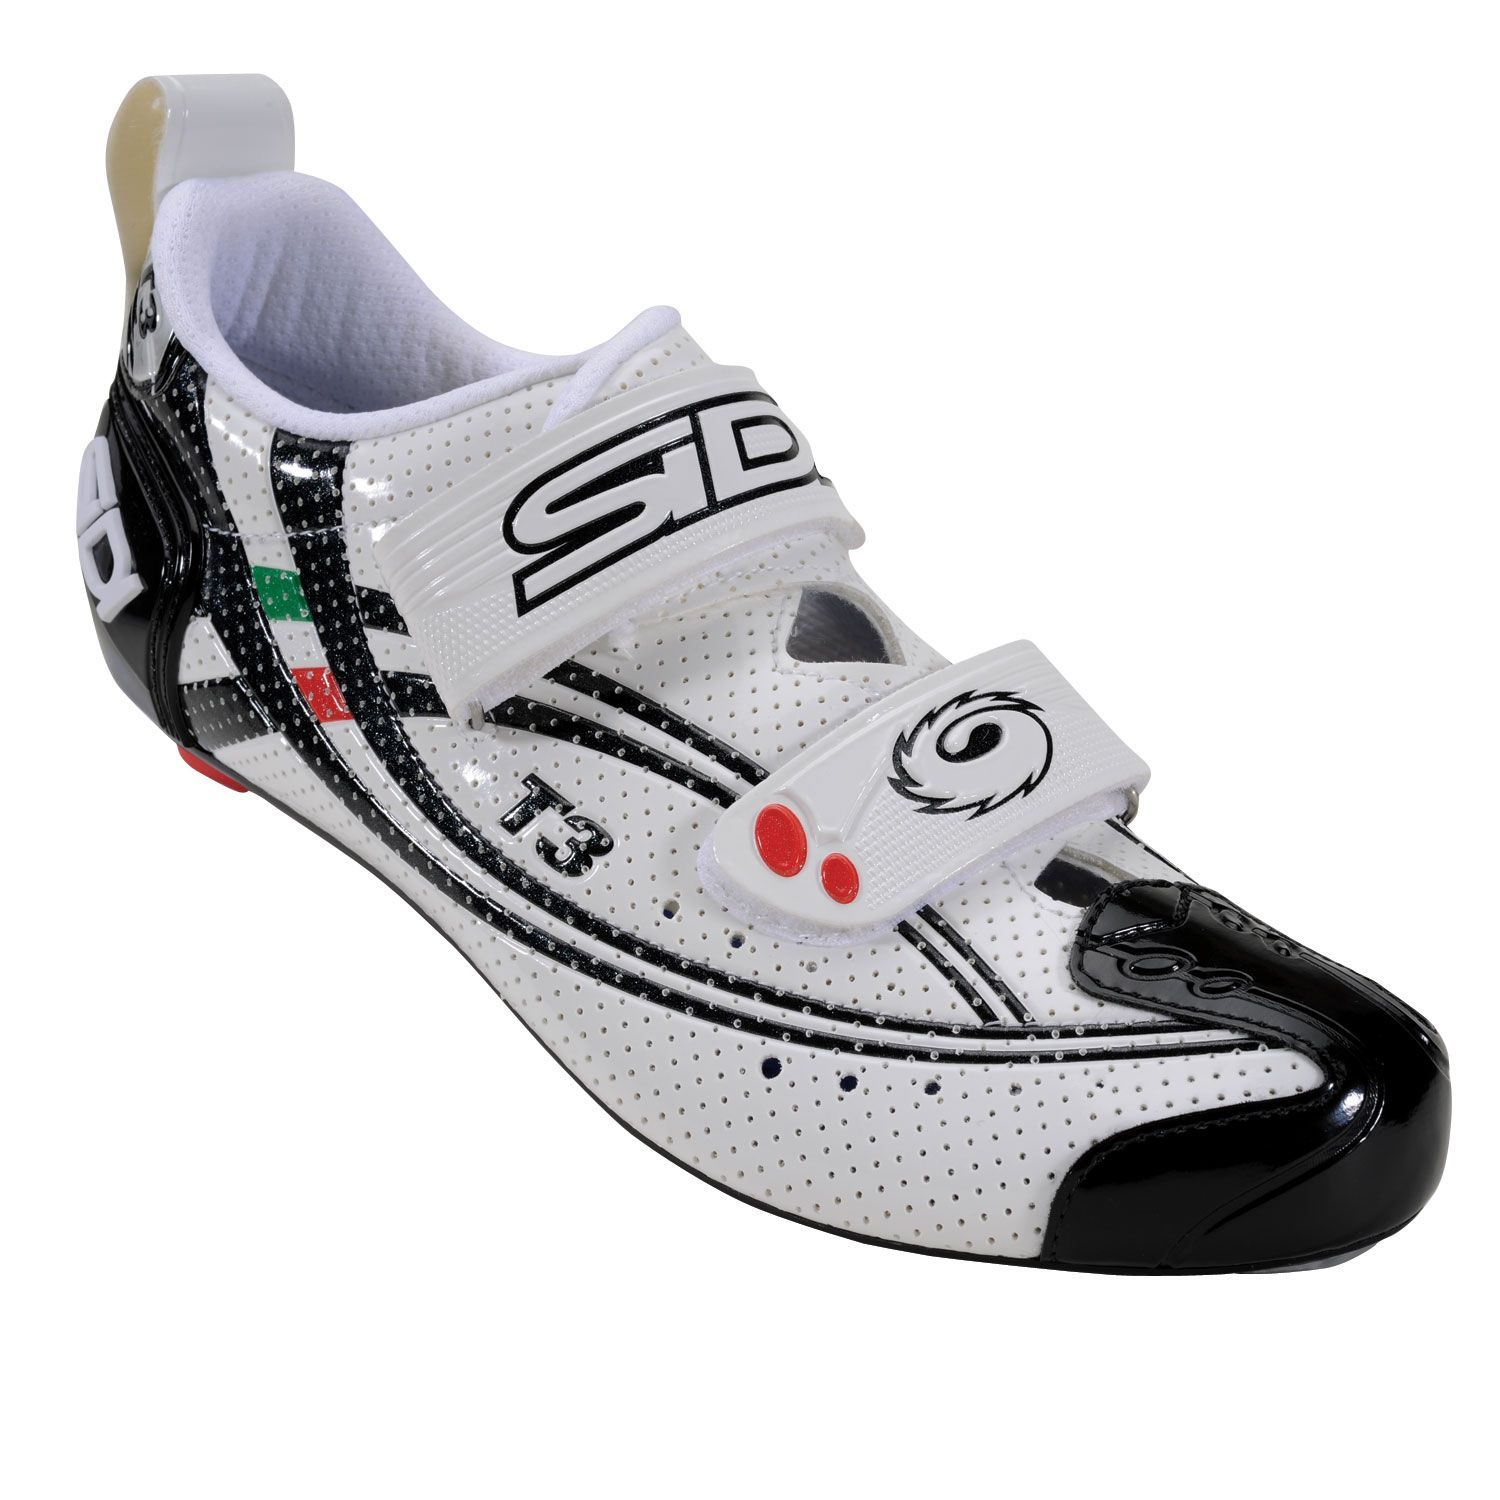 Sidi T3 carbon | Shoes | Pinterest | Cycling shoes and Bike shoes